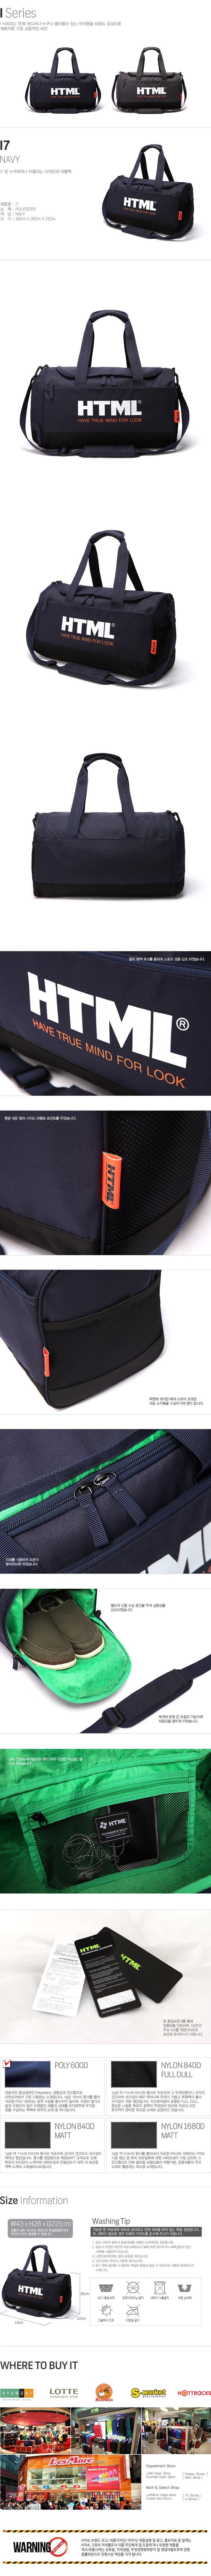 [에이치티엠엘]HTML- I7 Duffle bag (NAVY)